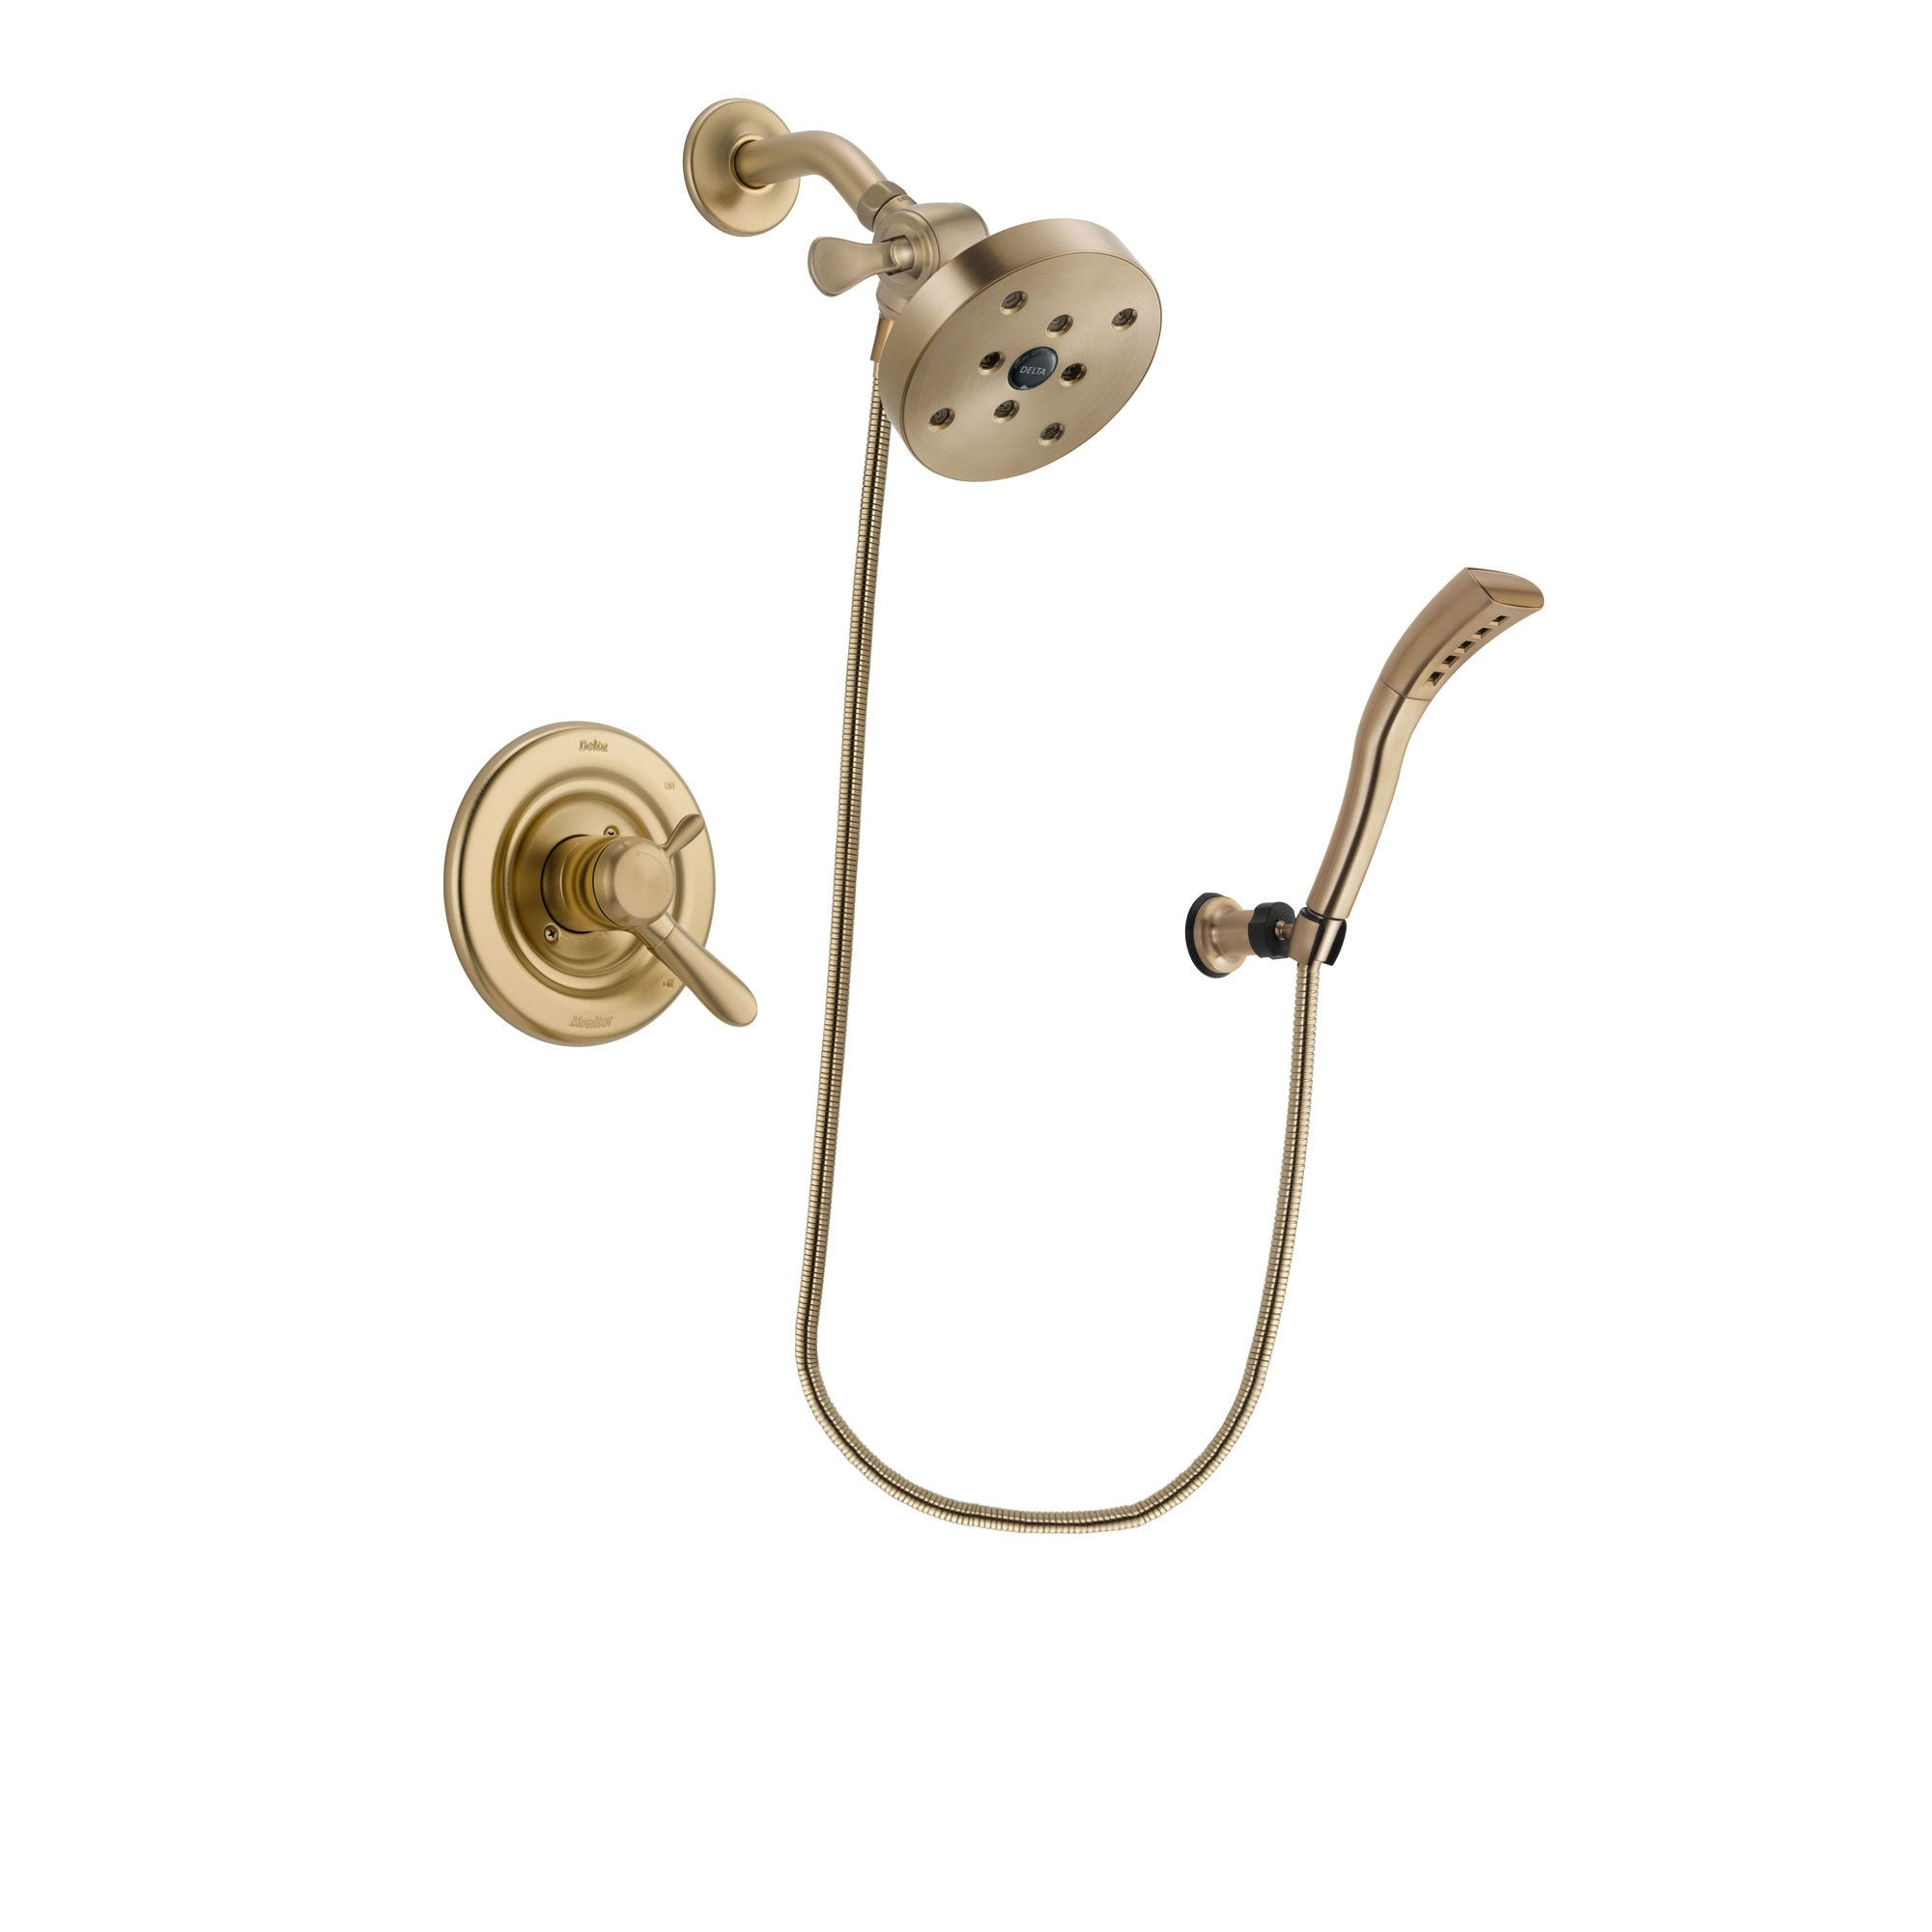 Delta Lahara Champagne Bronze Finish Dual Control Shower Faucet System Package with 5-1/2 inch Showerhead and Modern Wall Mount Personal Handheld Shower Spray Includes Rough-in Valve DSP3724V